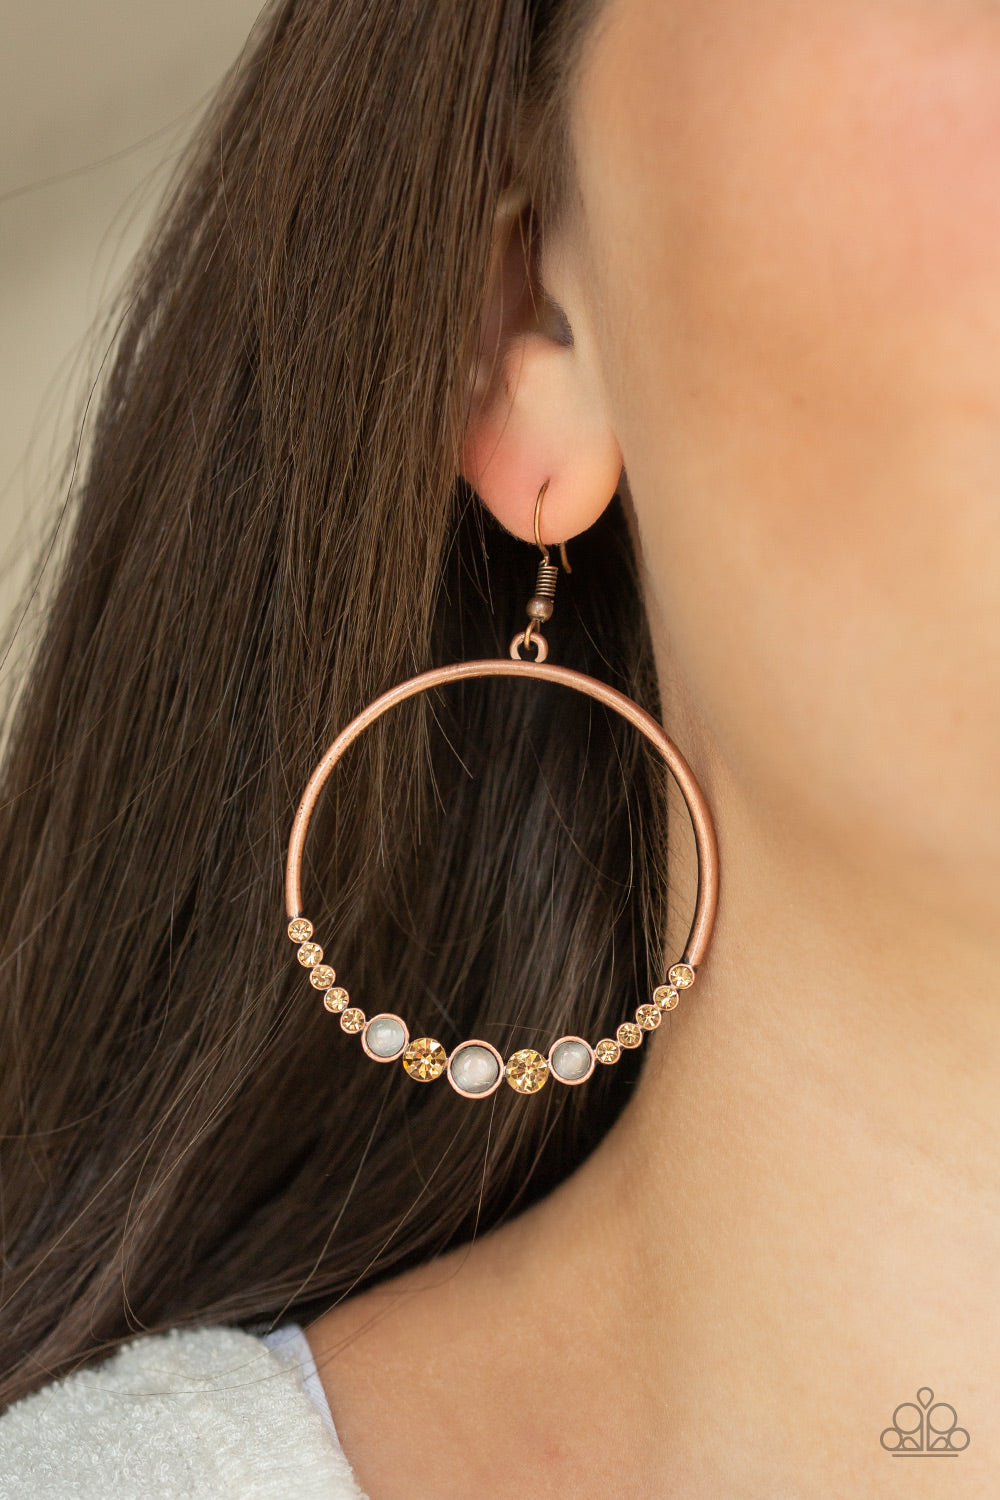 Dancing Radiance - Copper Earrings - Paparazzi Accessories